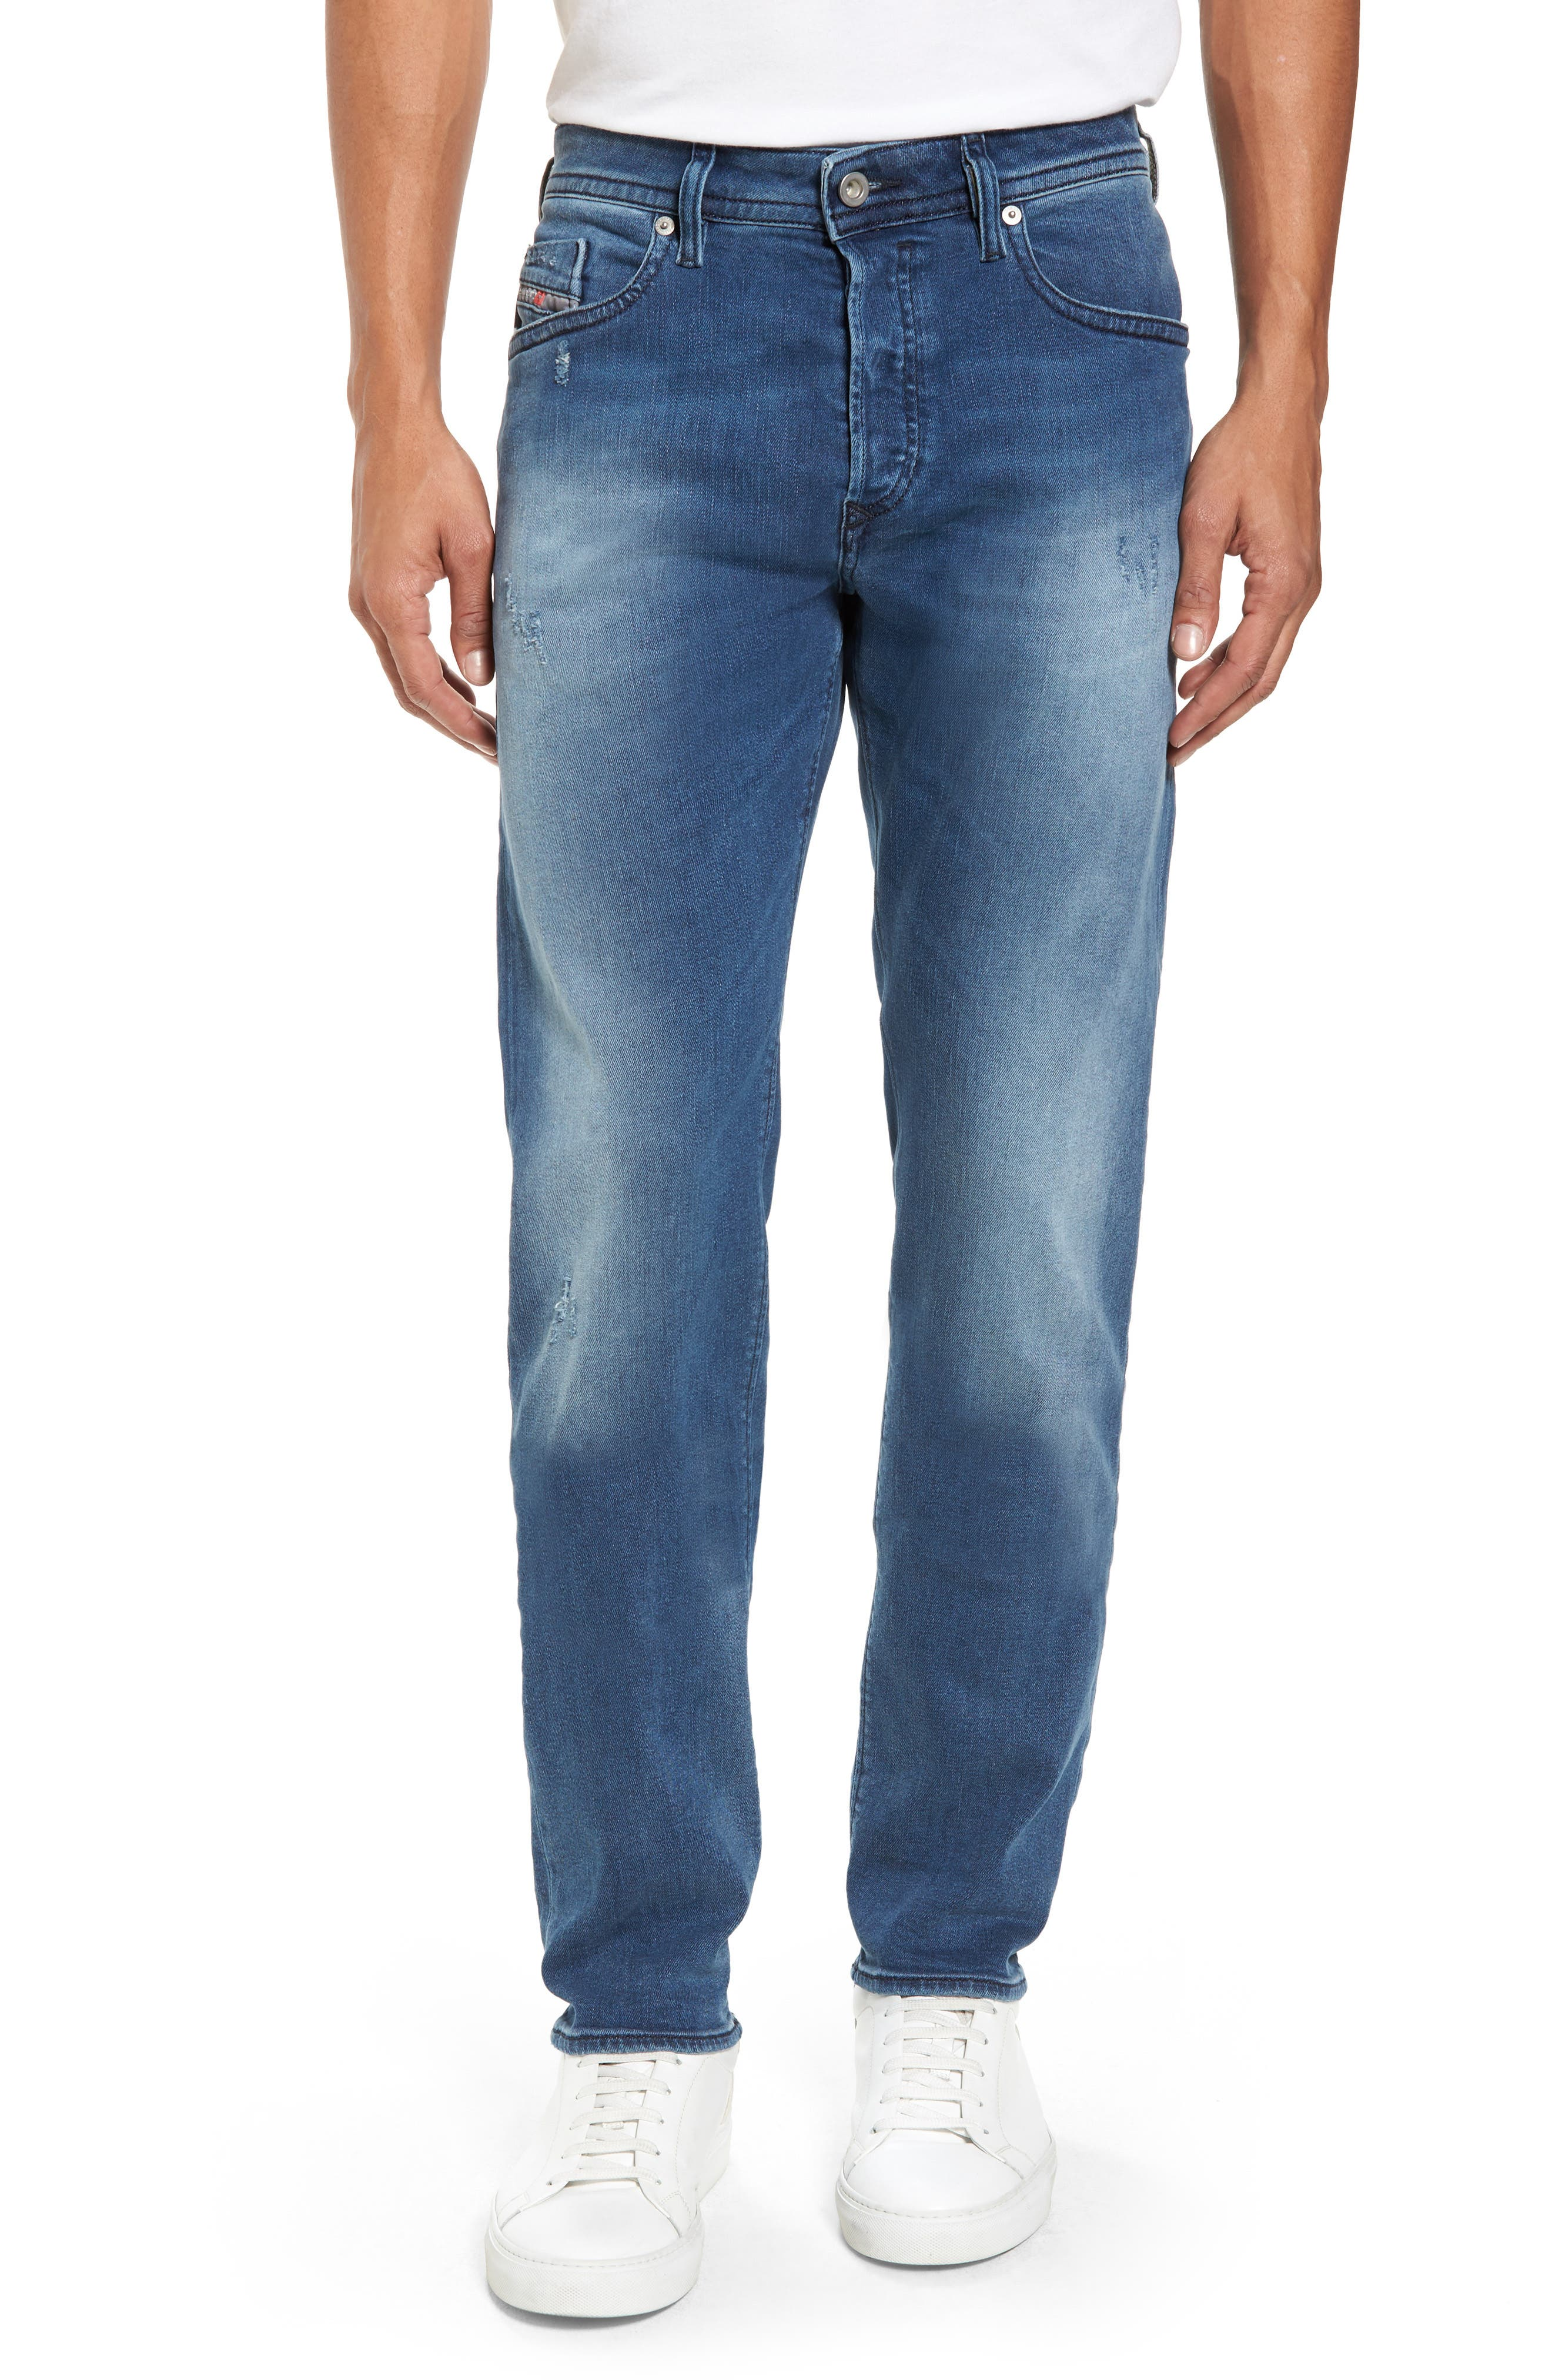 Buster Slim Straight Fit Jeans,                         Main,                         color, Denim